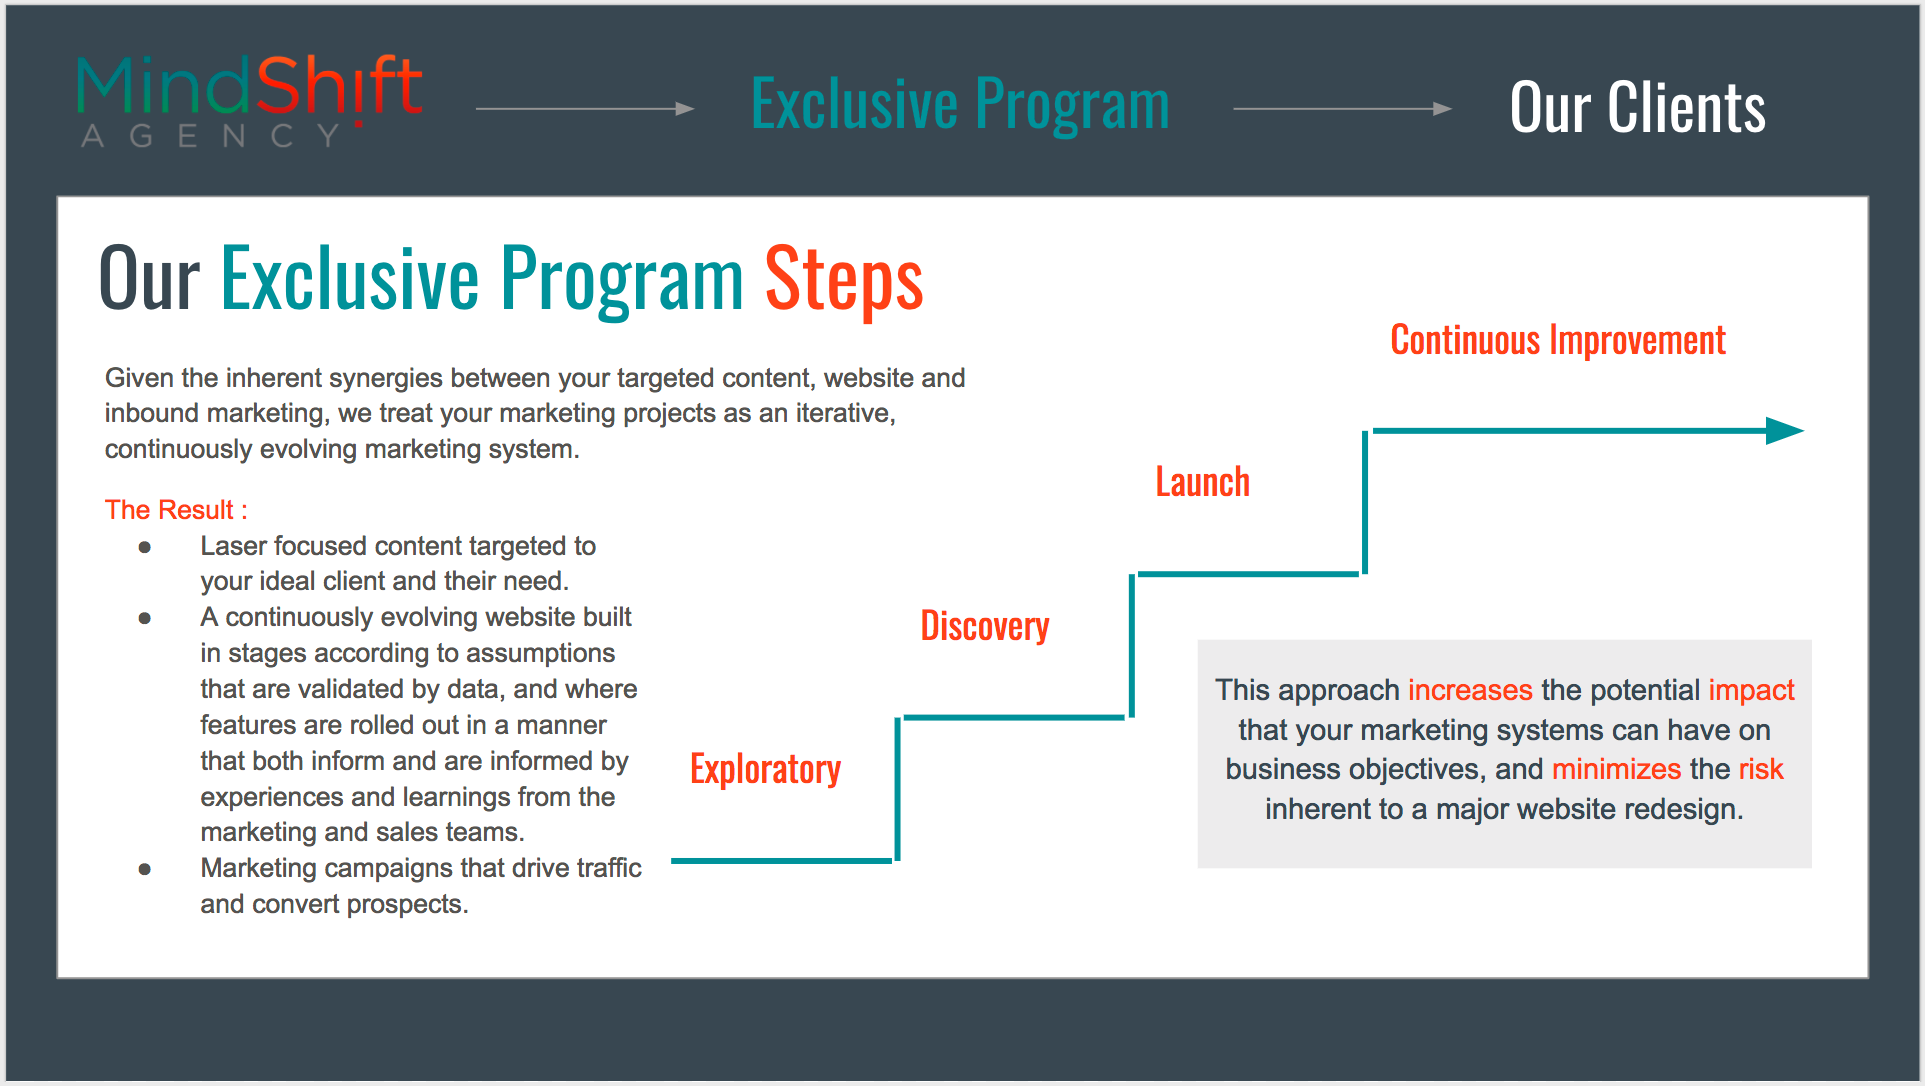 The MindShift Agency Exclusive Client Program